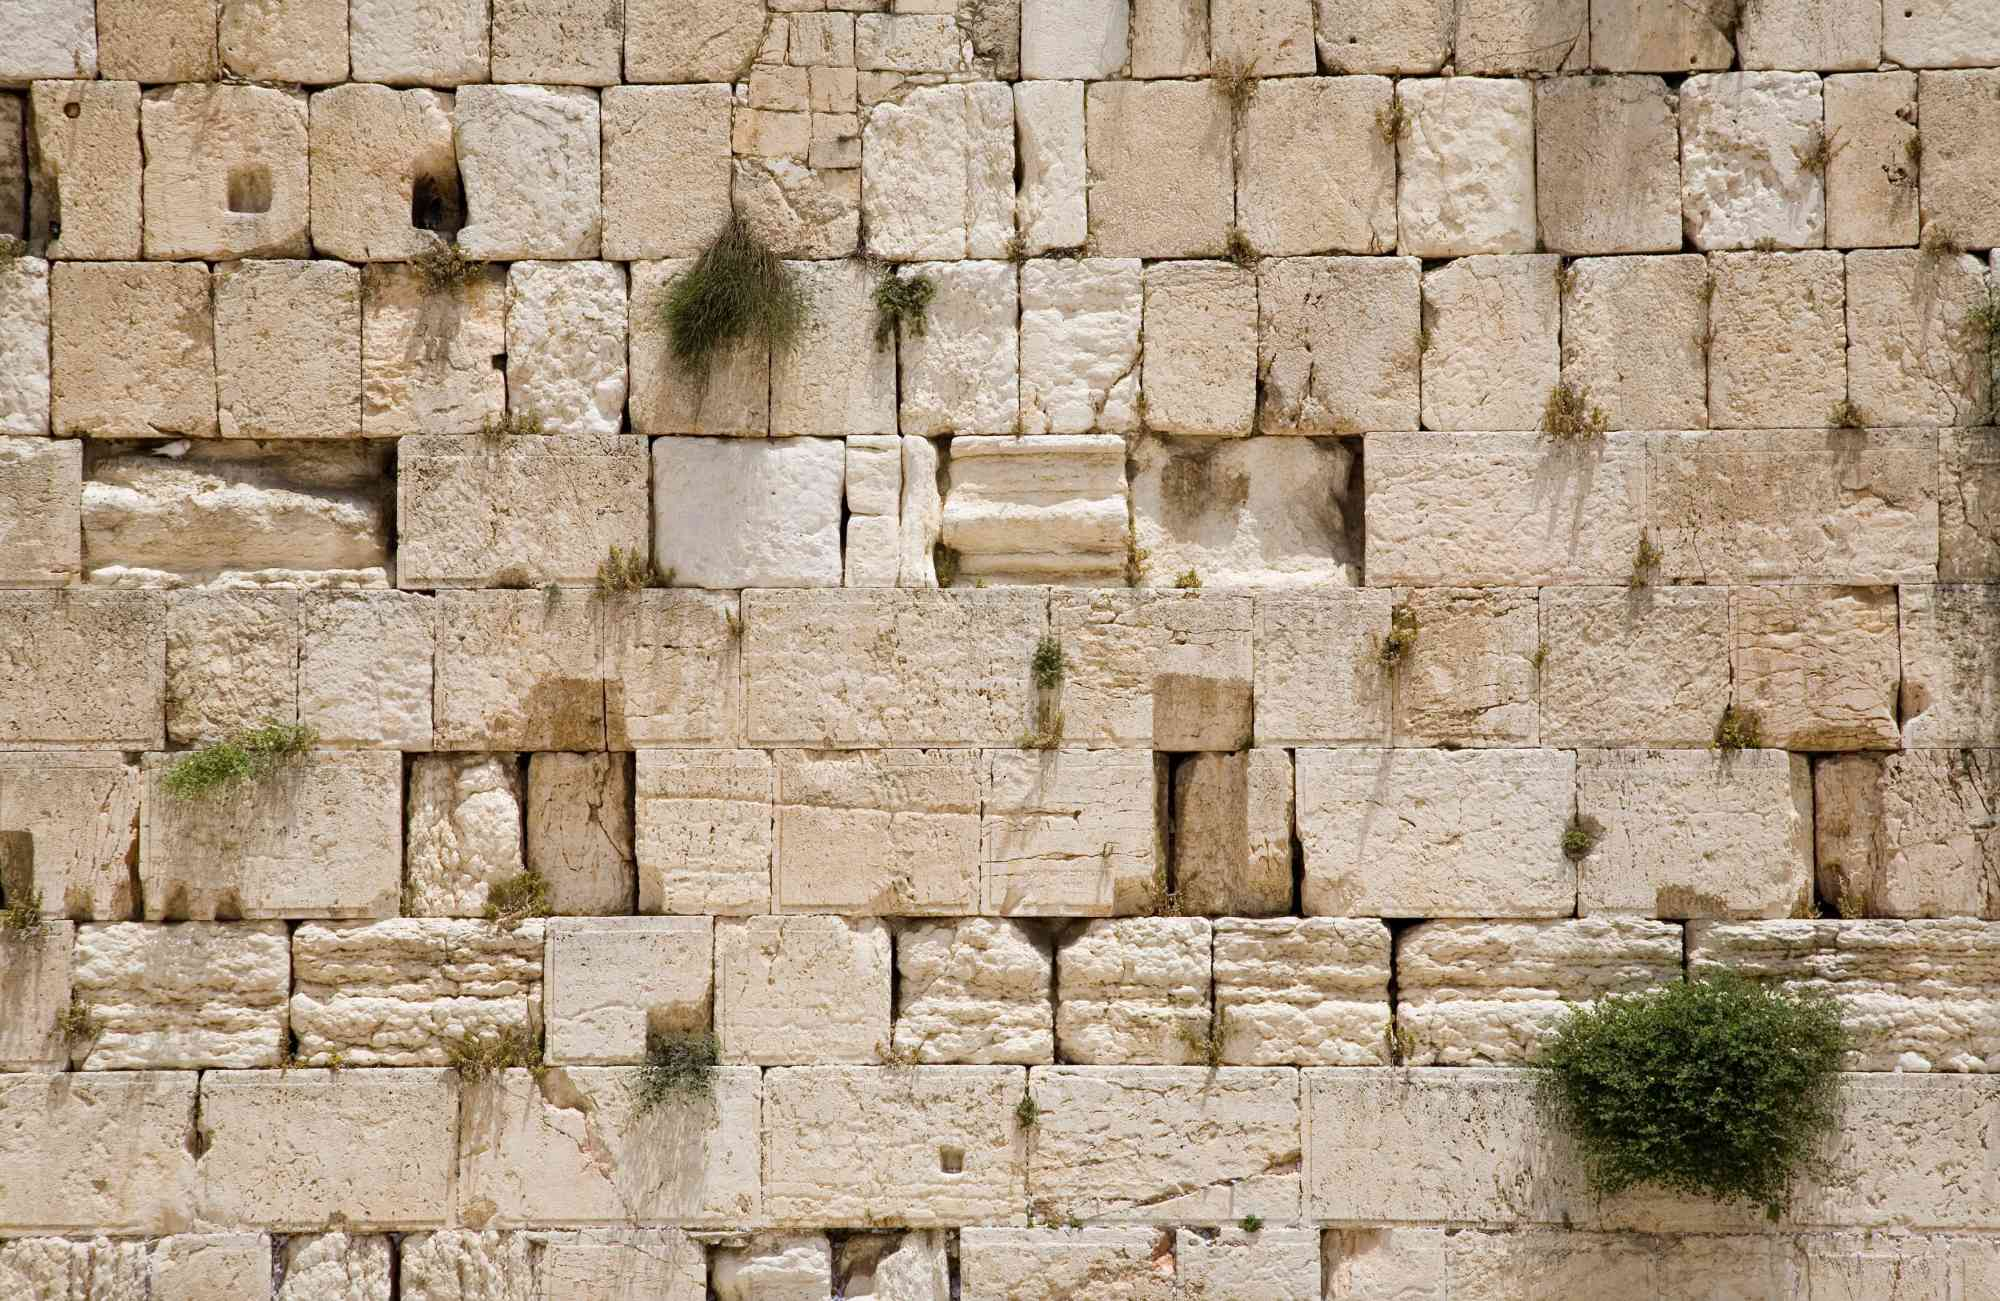 Western wall wallpaper wallpapersafari Wallpapers for the wall